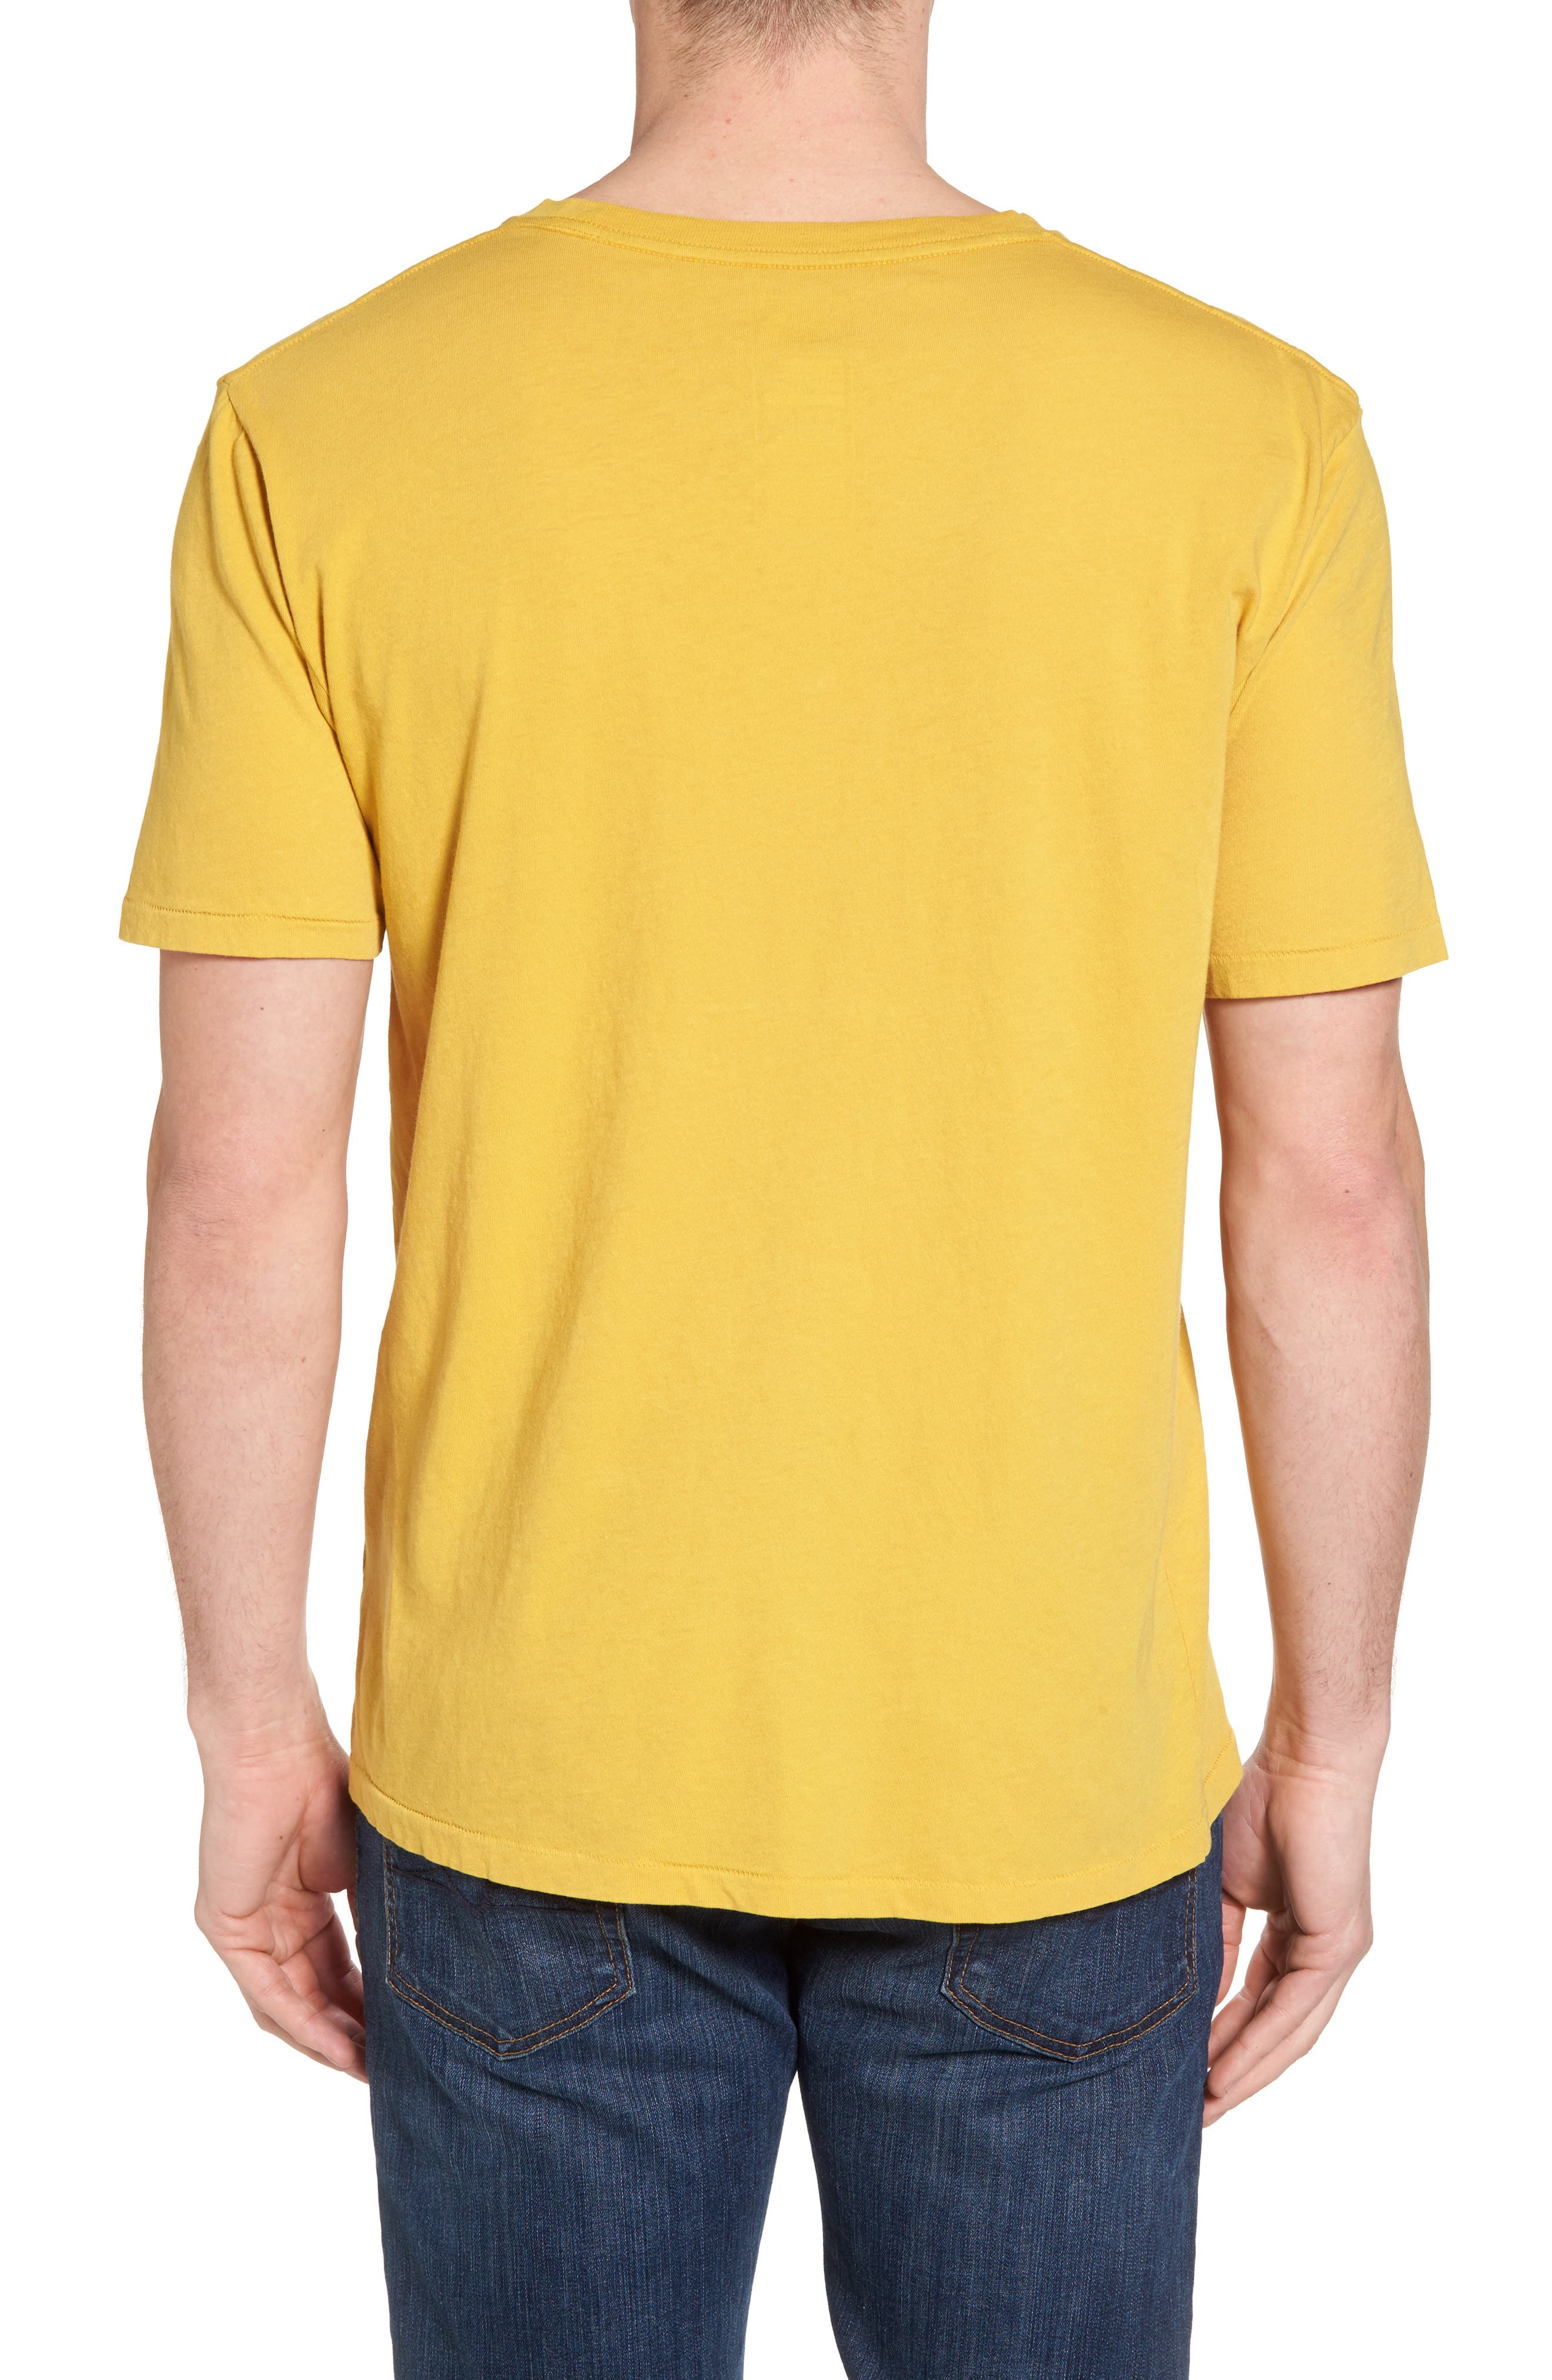 Well Loved Edge to Edge T-Shirt,                             Alternate thumbnail 2, color,                             Olivenite Yellow